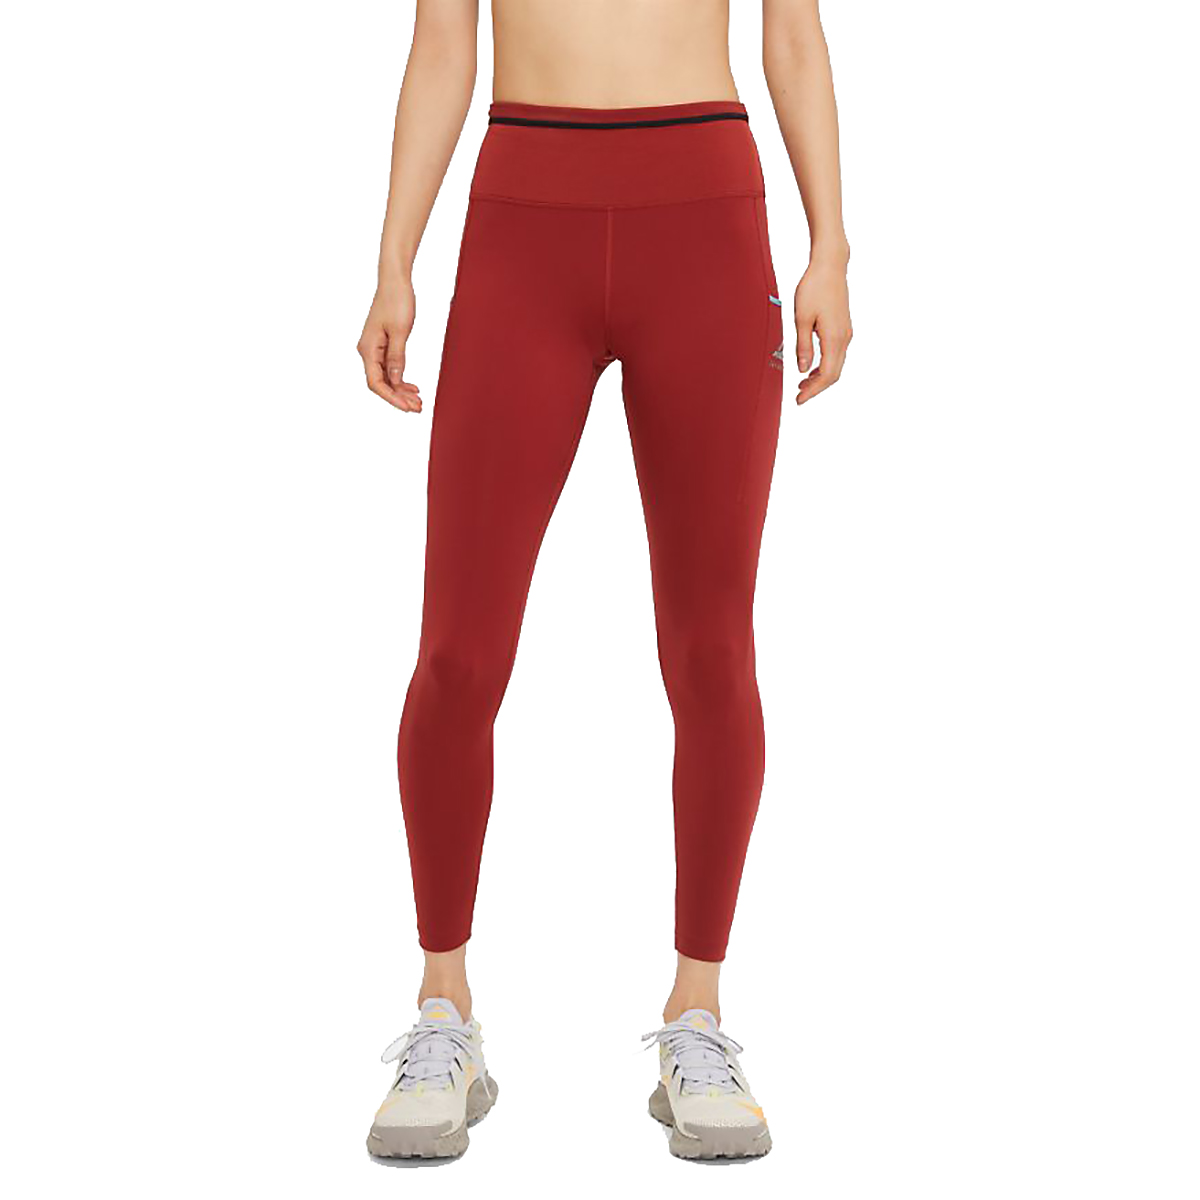 Women's Nike Epic Luxe Trail Running Tights - Color: Dark Cayenne/Cerulean/Reflective Silver - Size: XS, Dark Cayenne/Cerulean/Reflective Silver, large, image 1